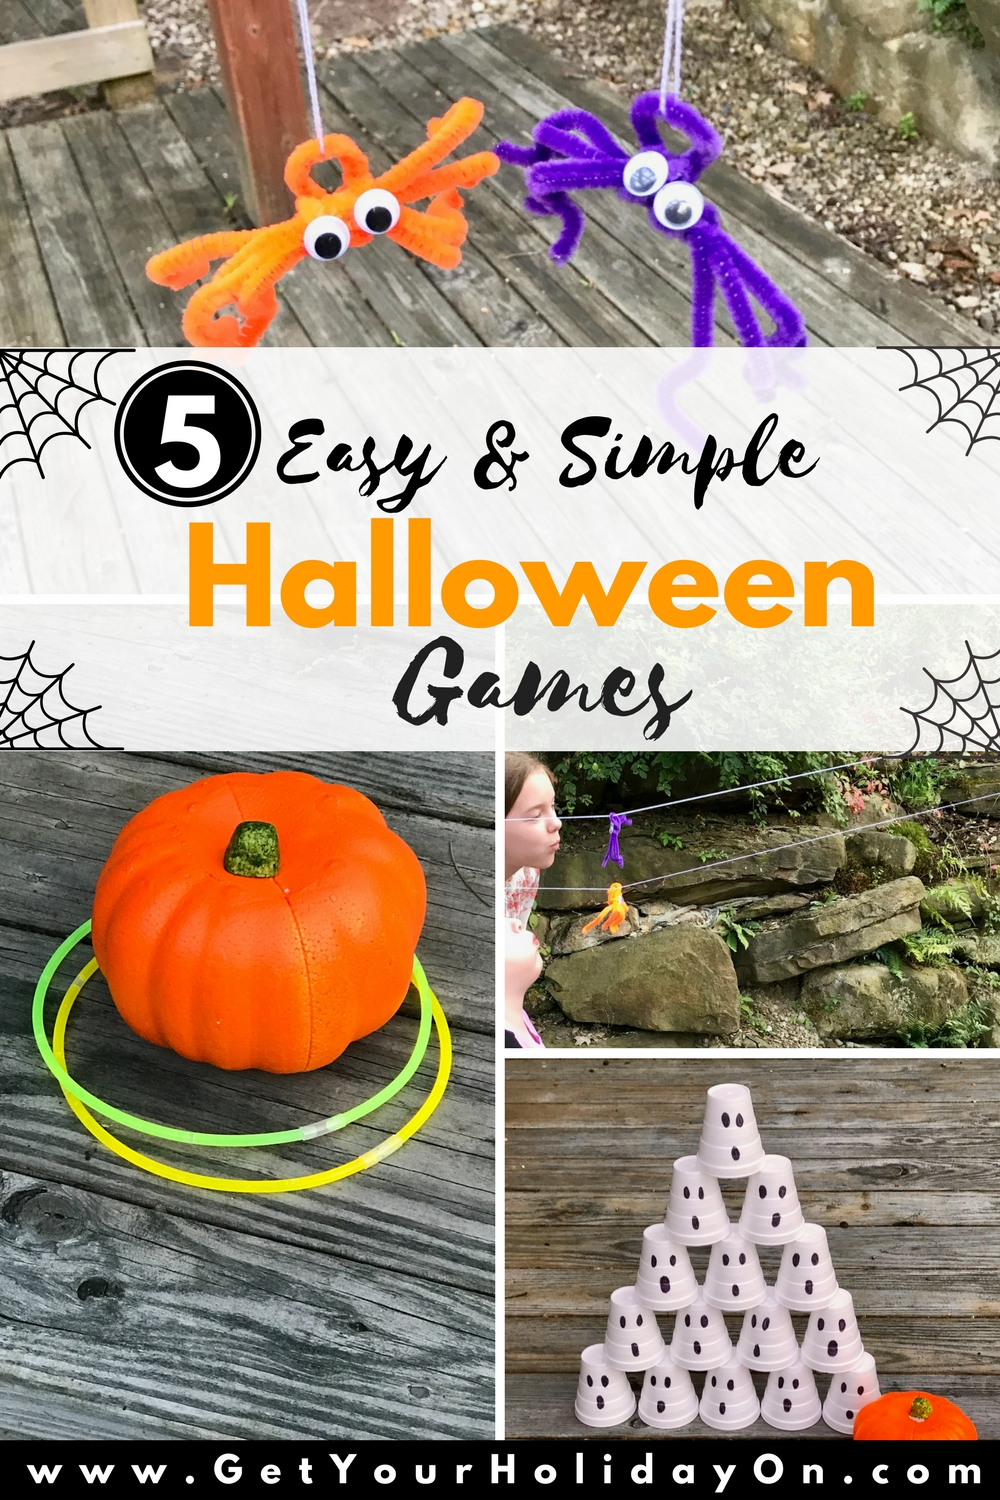 Halloween Games For Adults At Work – Party Games For All